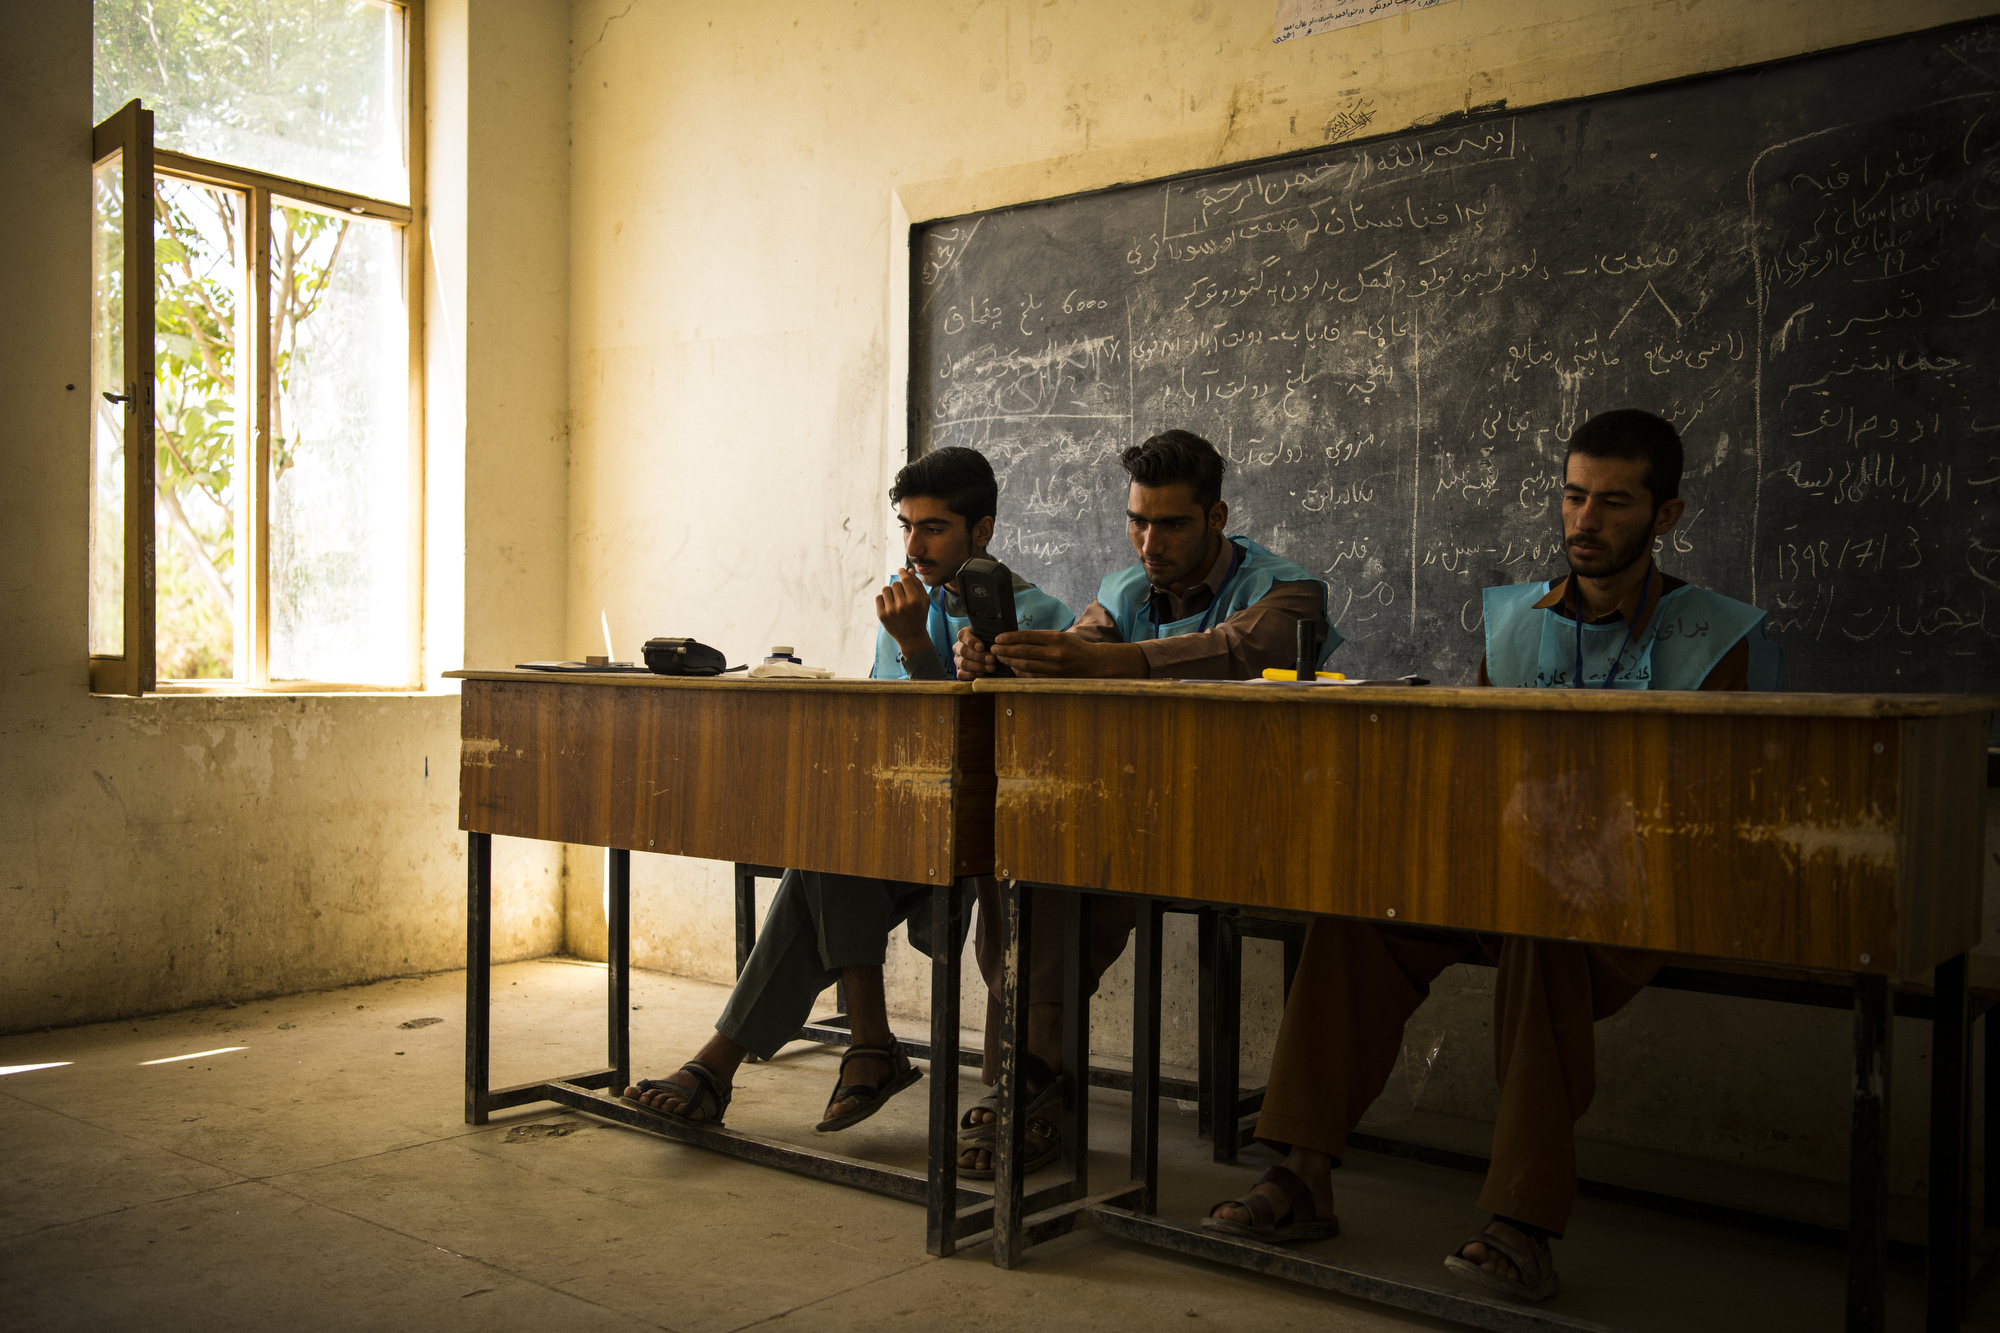 With intermittent fighting and rocket attacks throughout the day, election workers in the Awal Baba school voting centre in Maidan Shahr, had little work to do. Photo: Andrew Quilty, 2019.